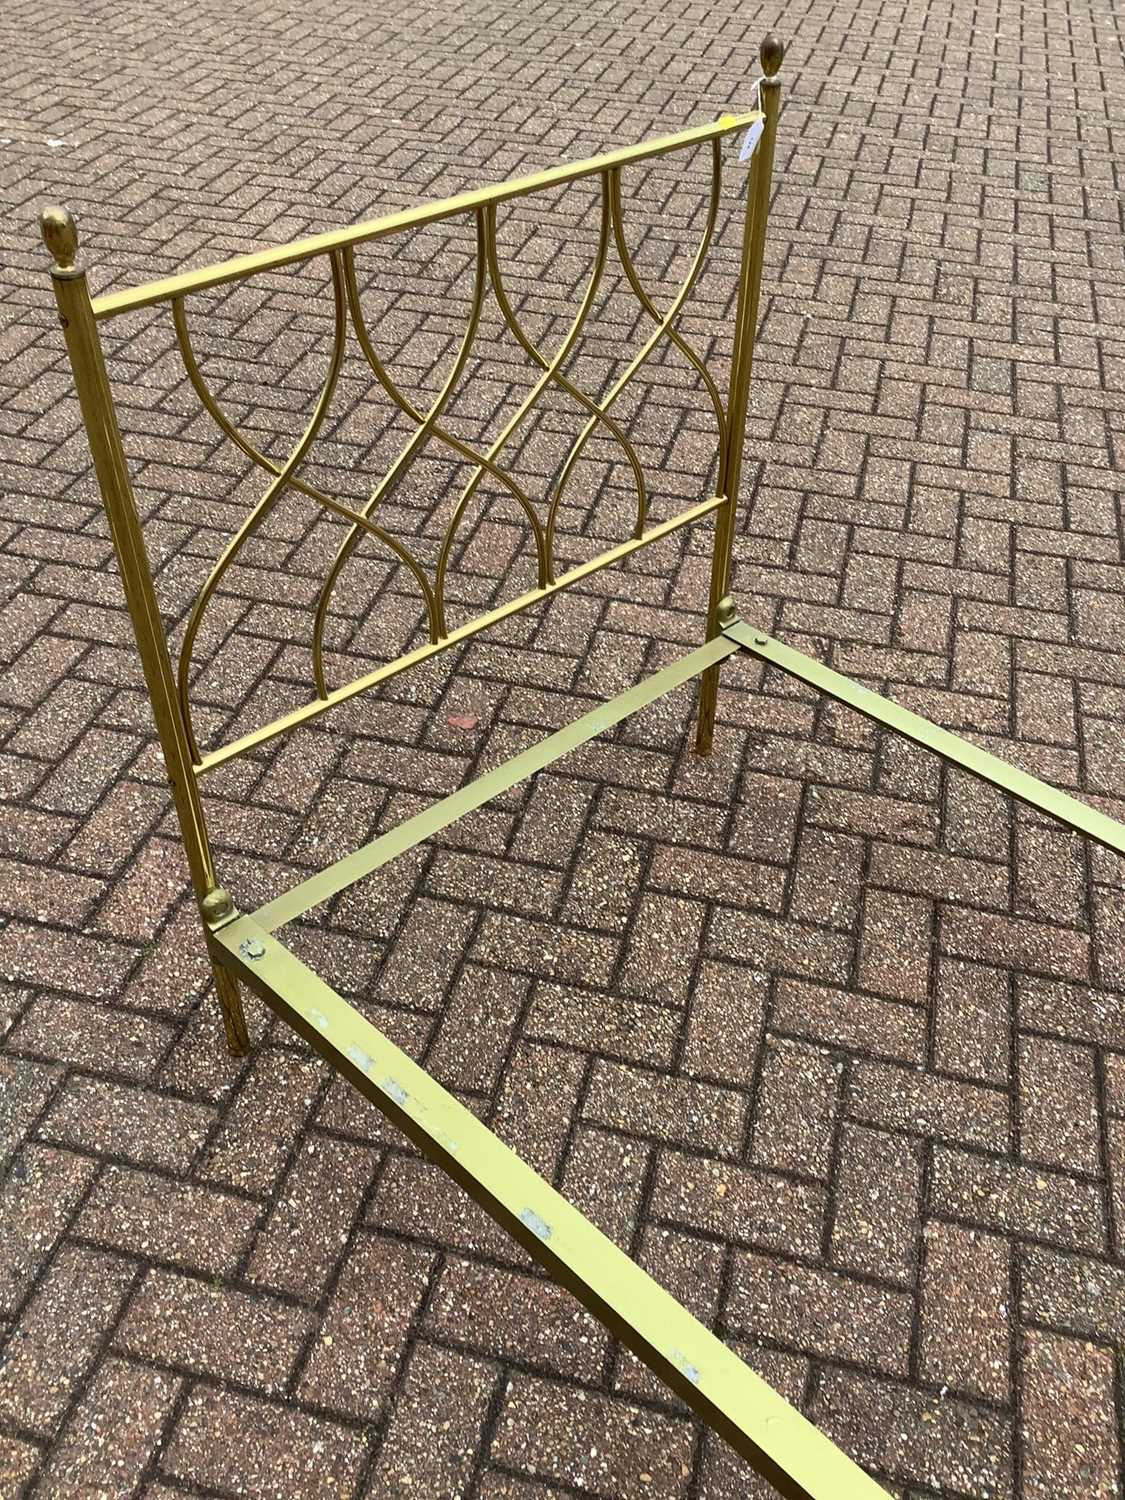 Brass single bed with side irons, 89cm wide - Image 3 of 11